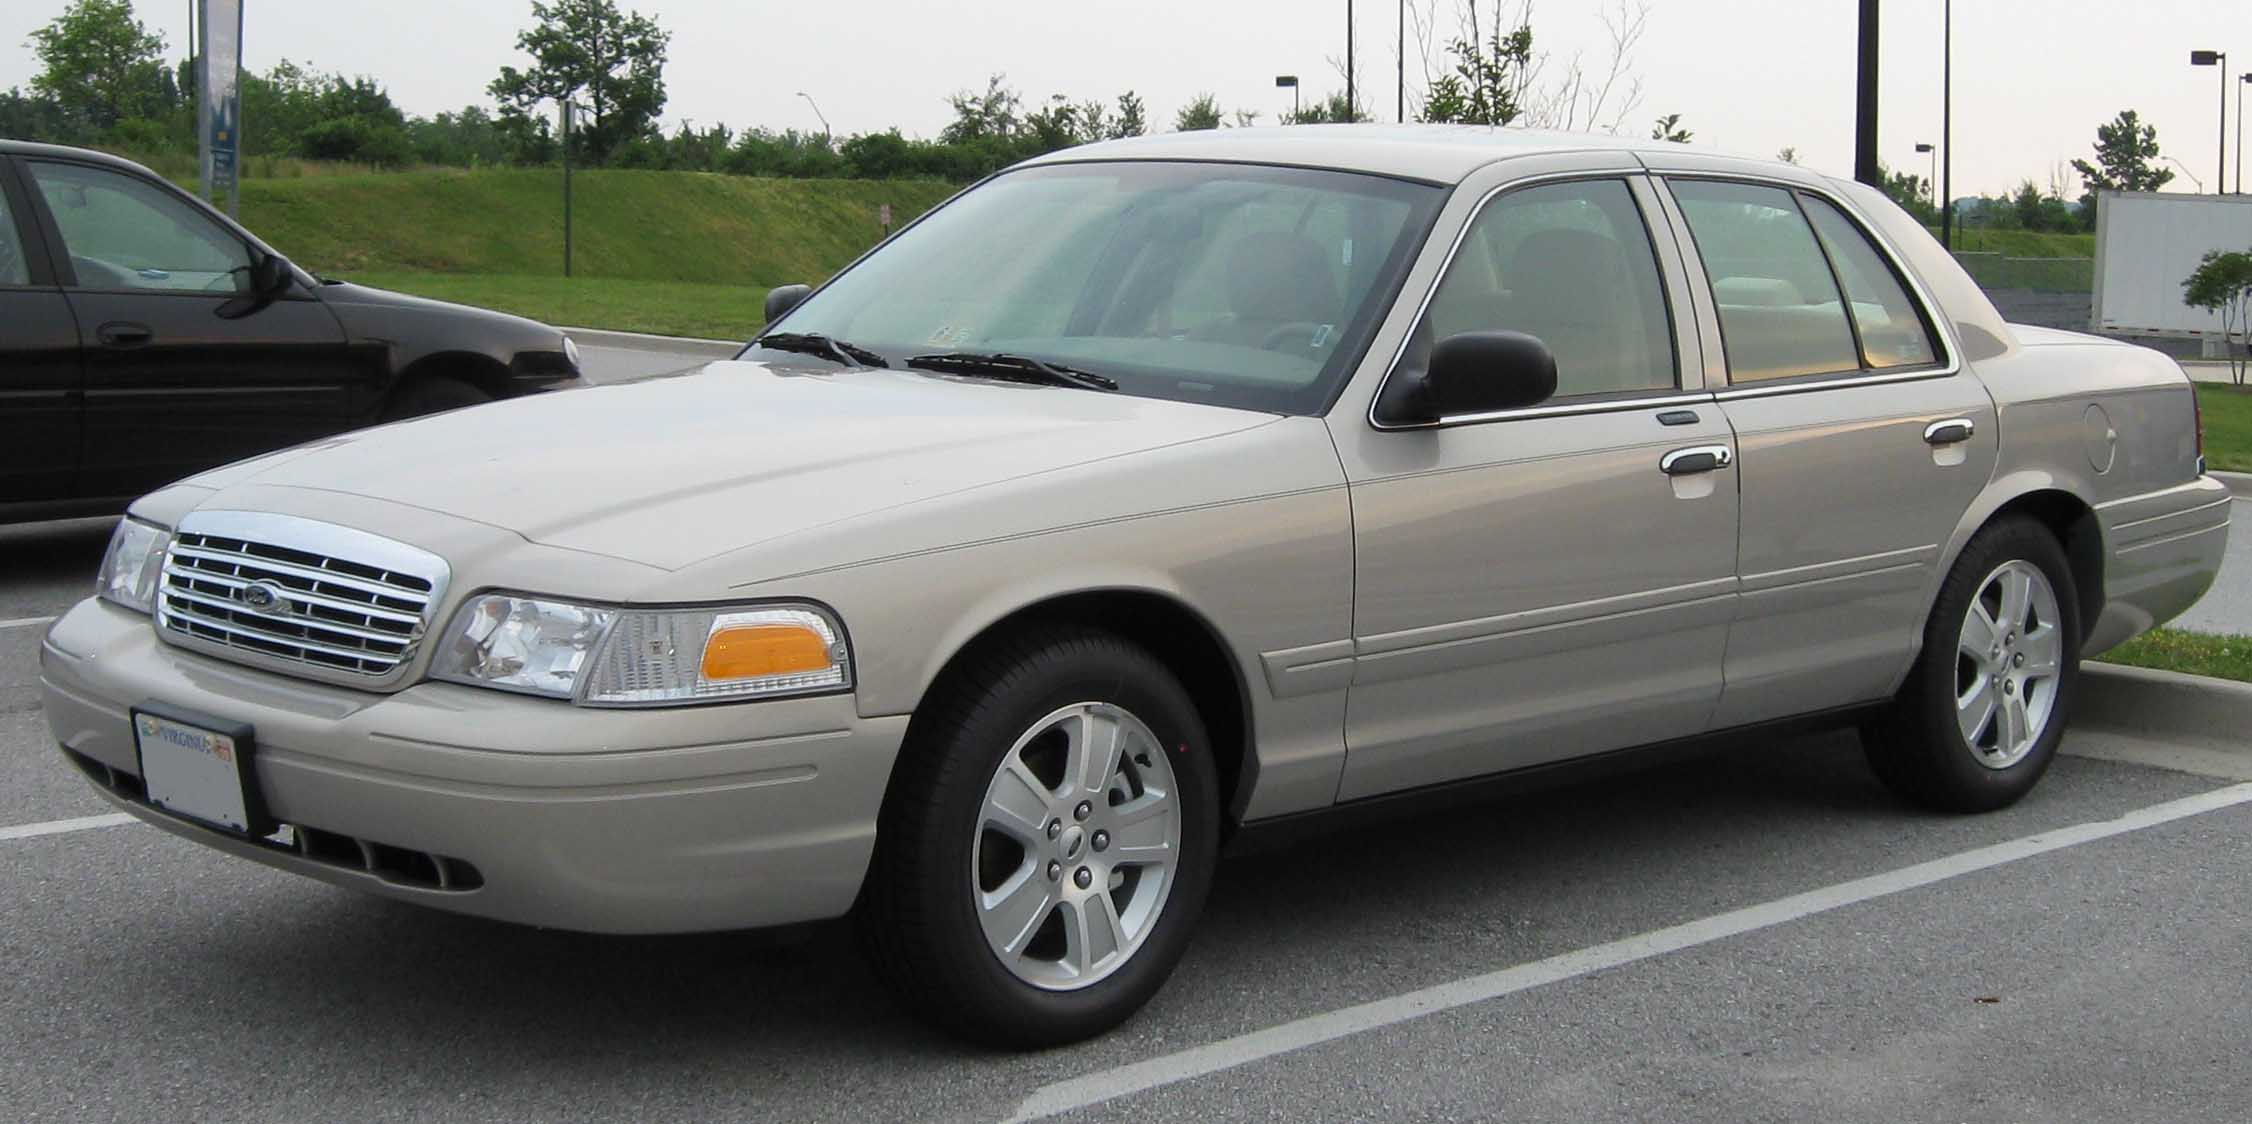 2003 Ford Crown Victoria #3